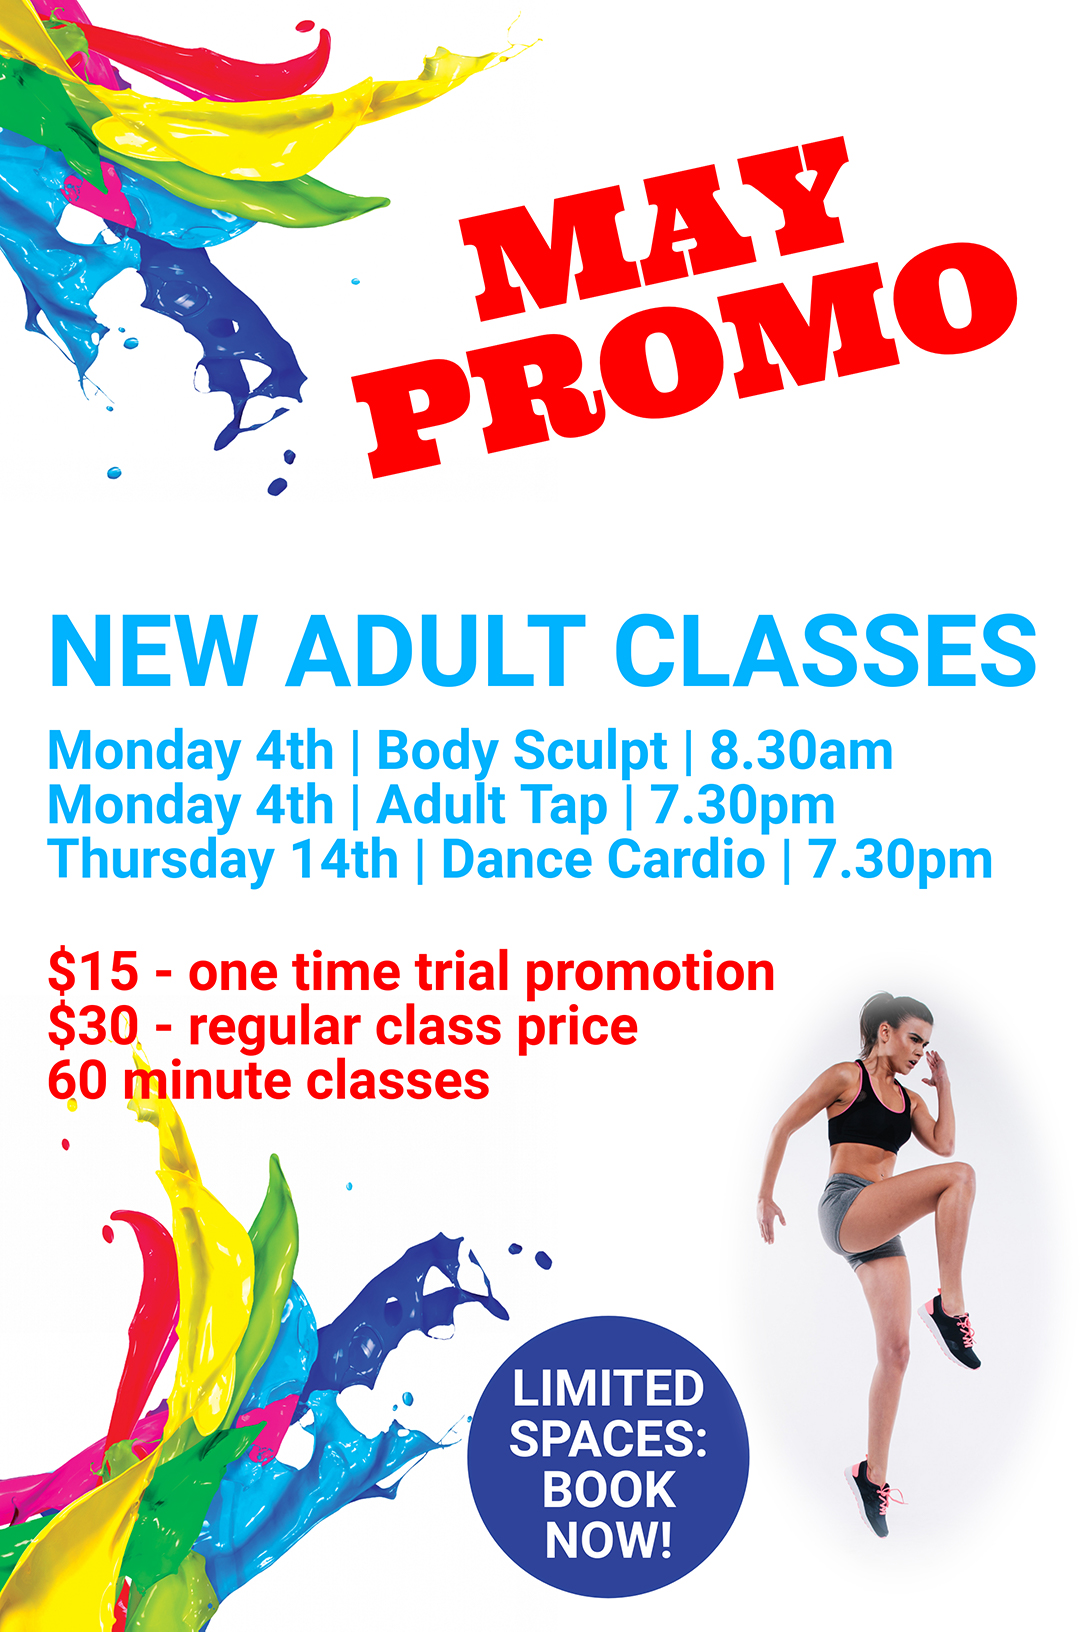 May Promo: NEW ADULT CLASSES!